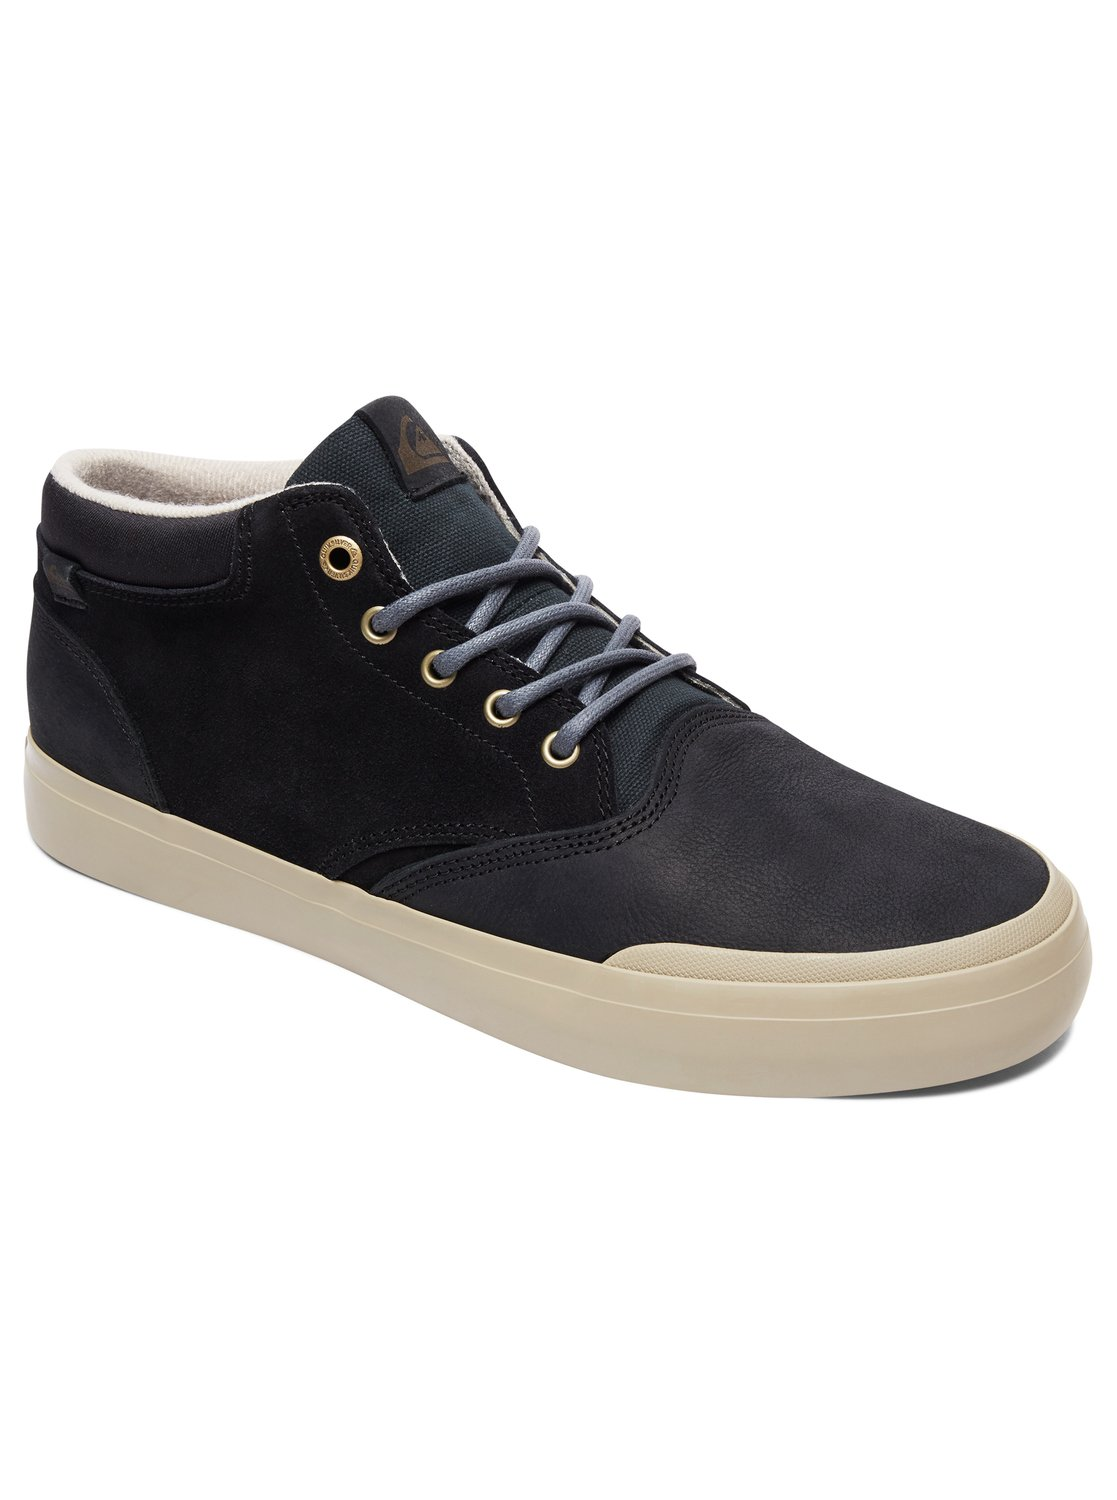 Image is loading Quiksilver-Verant-Deluxe-Mid-Top-Shoes-Men-US- 7bb92dc06ad